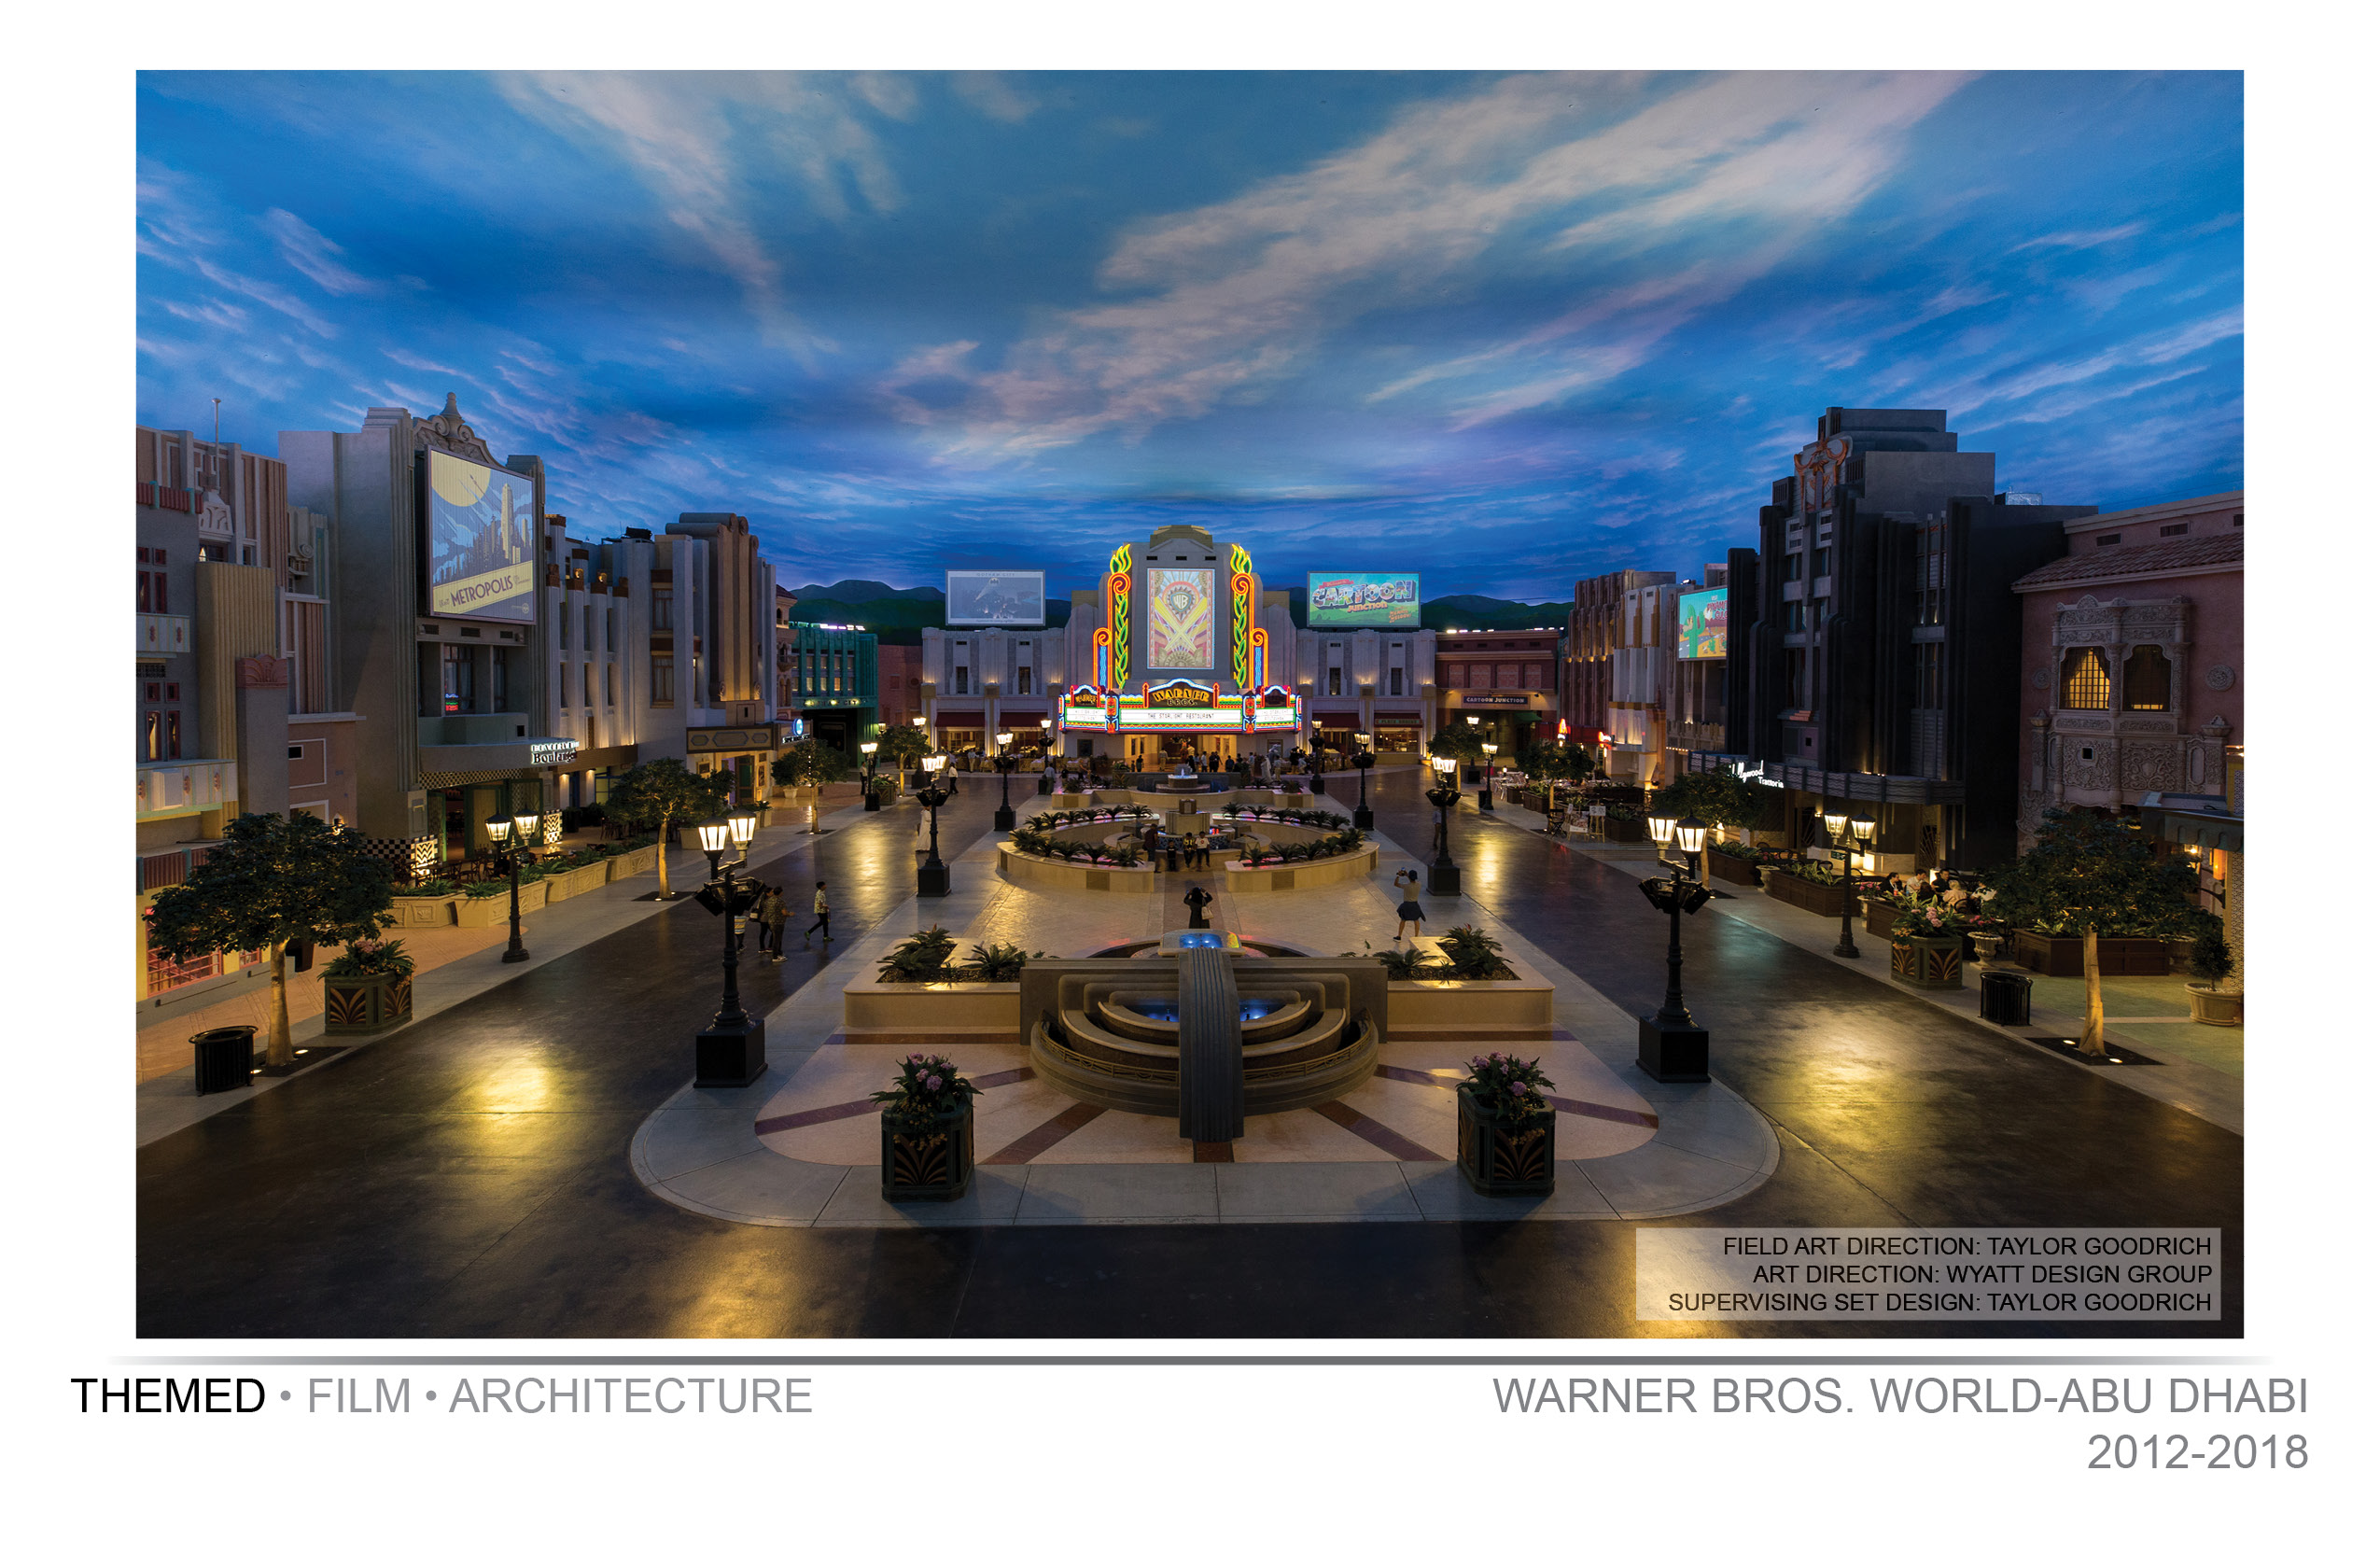 Warner Bros. Plaza